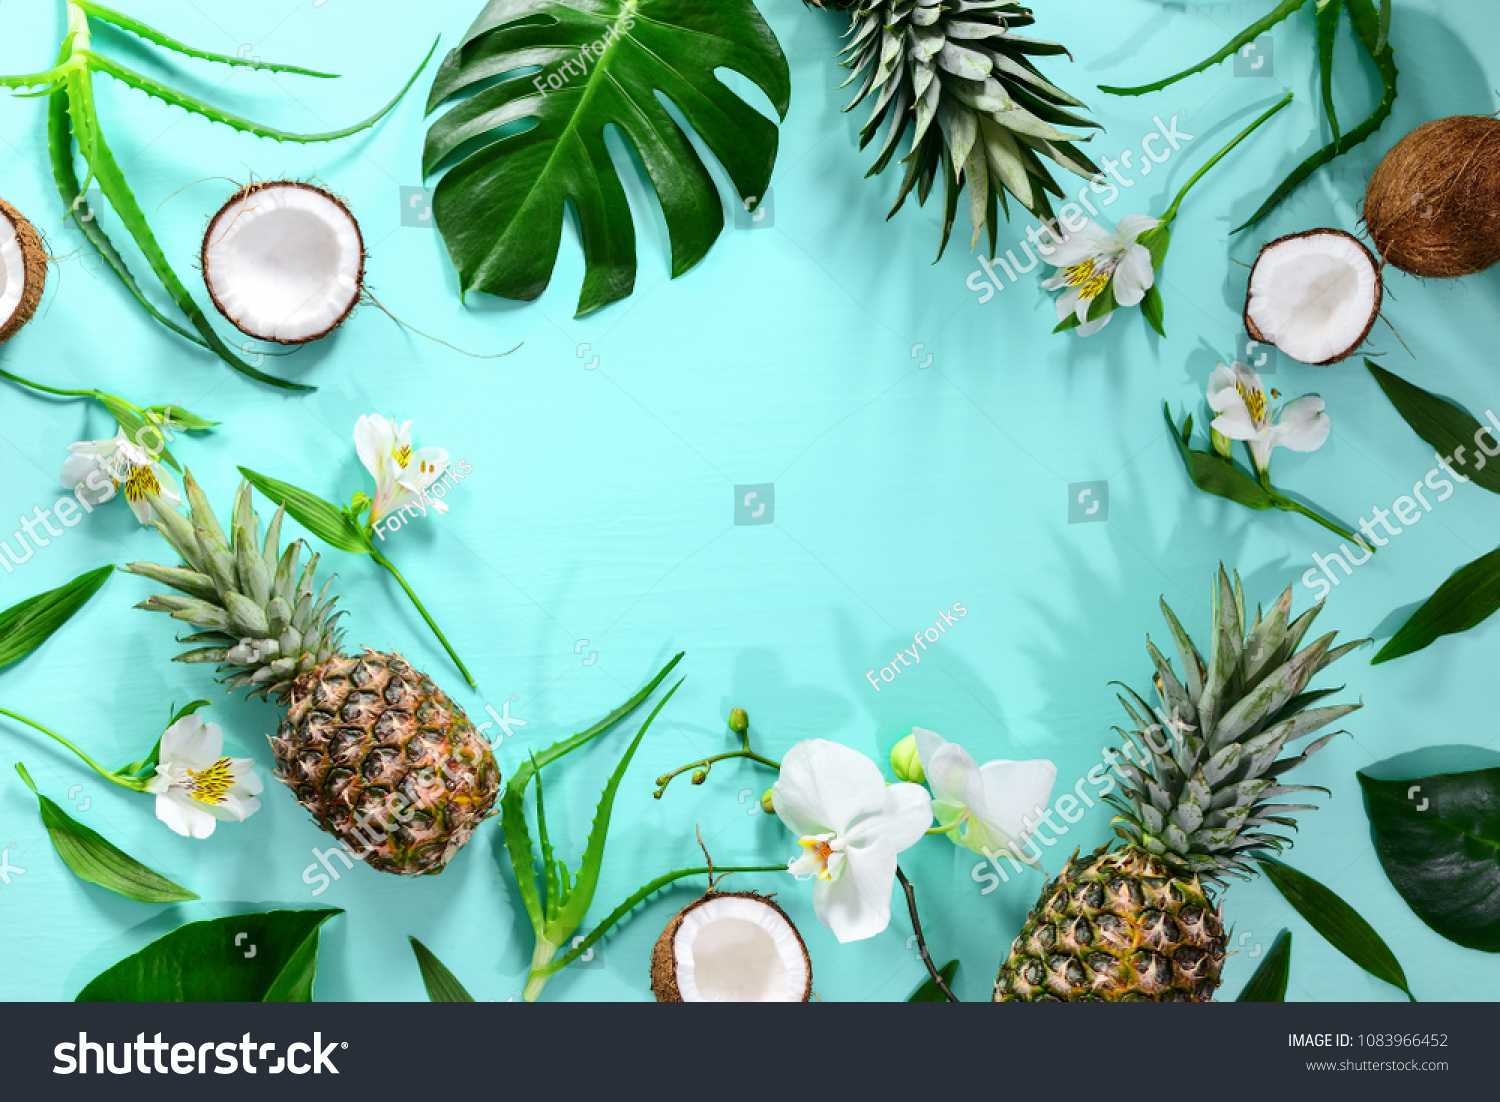 Summer tropical background with a space for a text, various fruits, green leaves and flowers arranged in a way that light shadows are fallen on the background surface, helping to keep some sum #1083966452 - 123PhotoFree.com